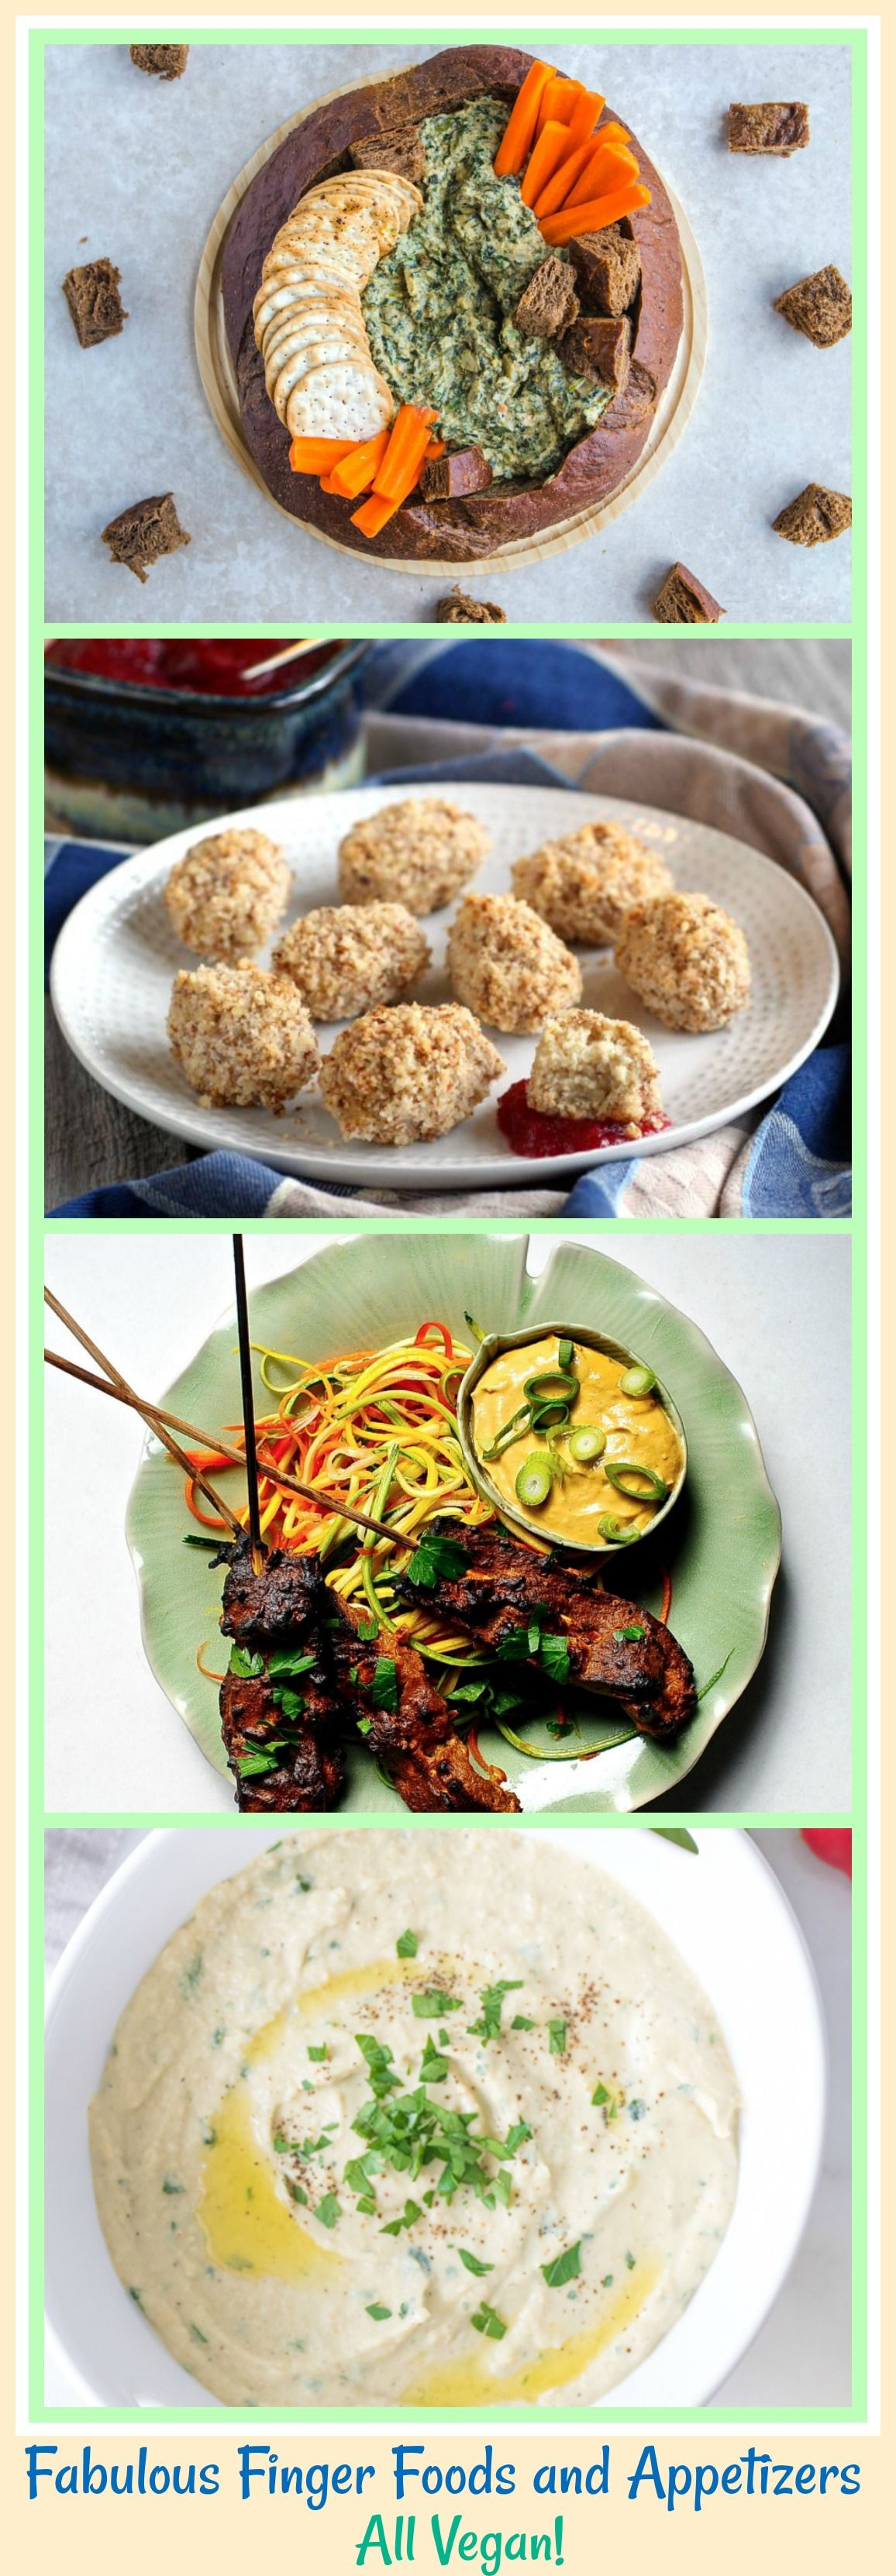 12 Fabulous Finger Foods and Appetizers All Vegan